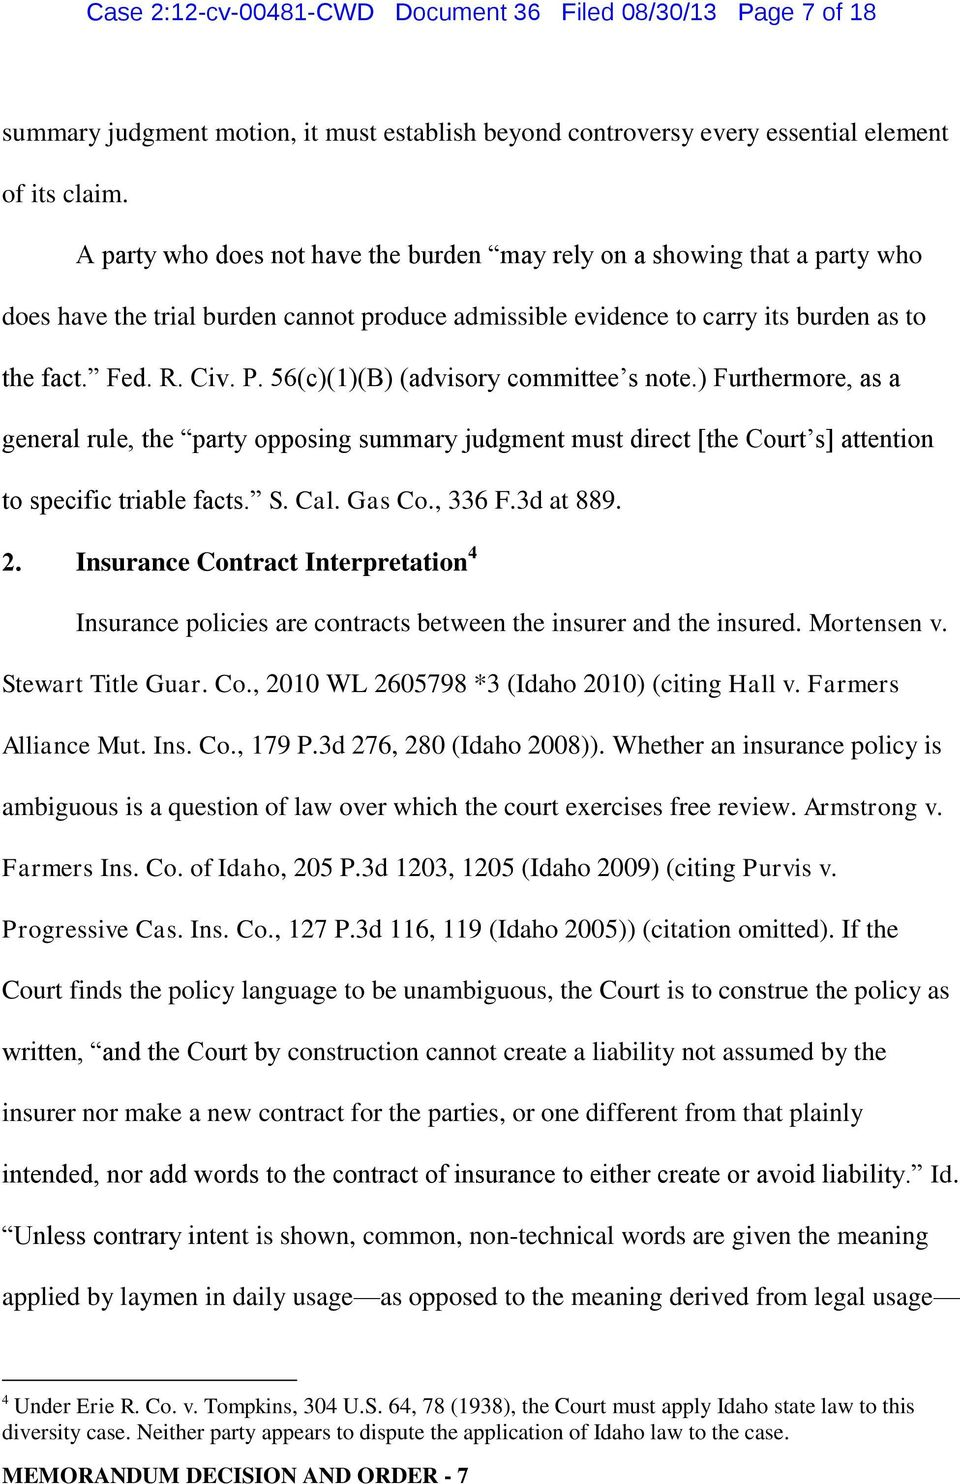 56(c)(1)(B) (advisory committee s note.) Furthermore, as a general rule, the party opposing summary judgment must direct [the Court s] attention to specific triable facts. S. Cal. Gas Co., 336 F.